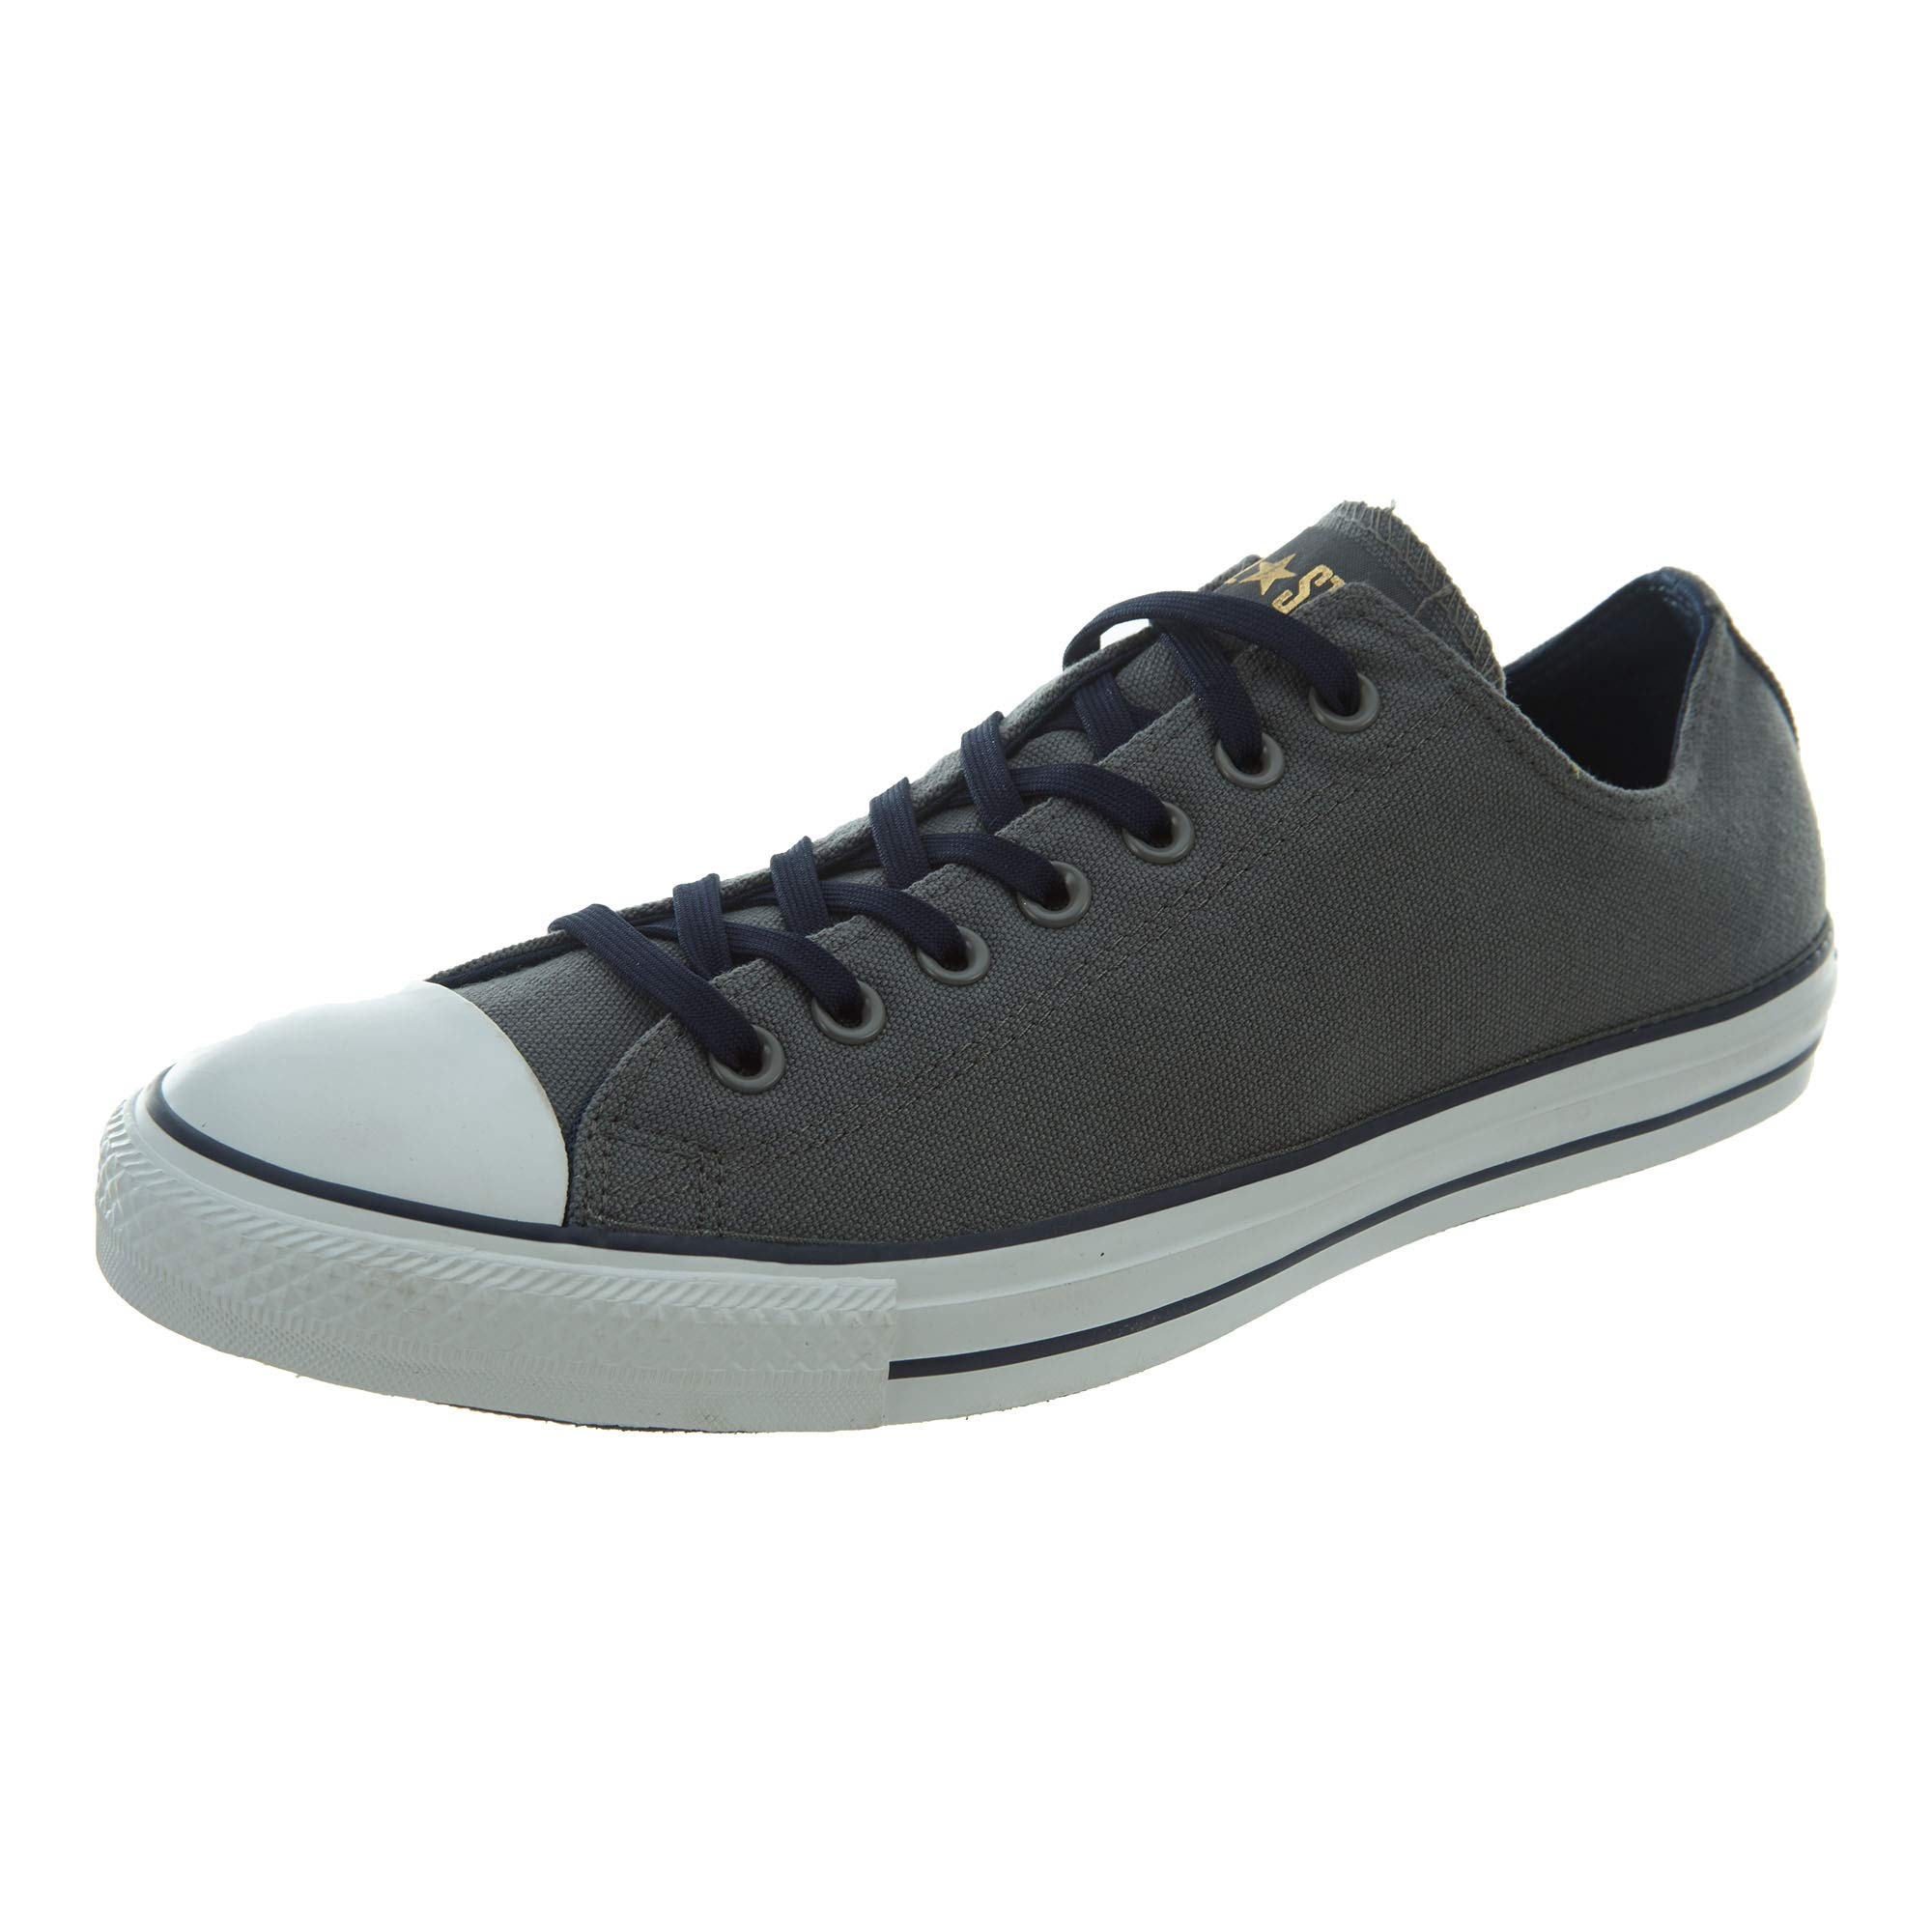 Converse Chuck Taylor All Star Low - Charcoal, 12 D US